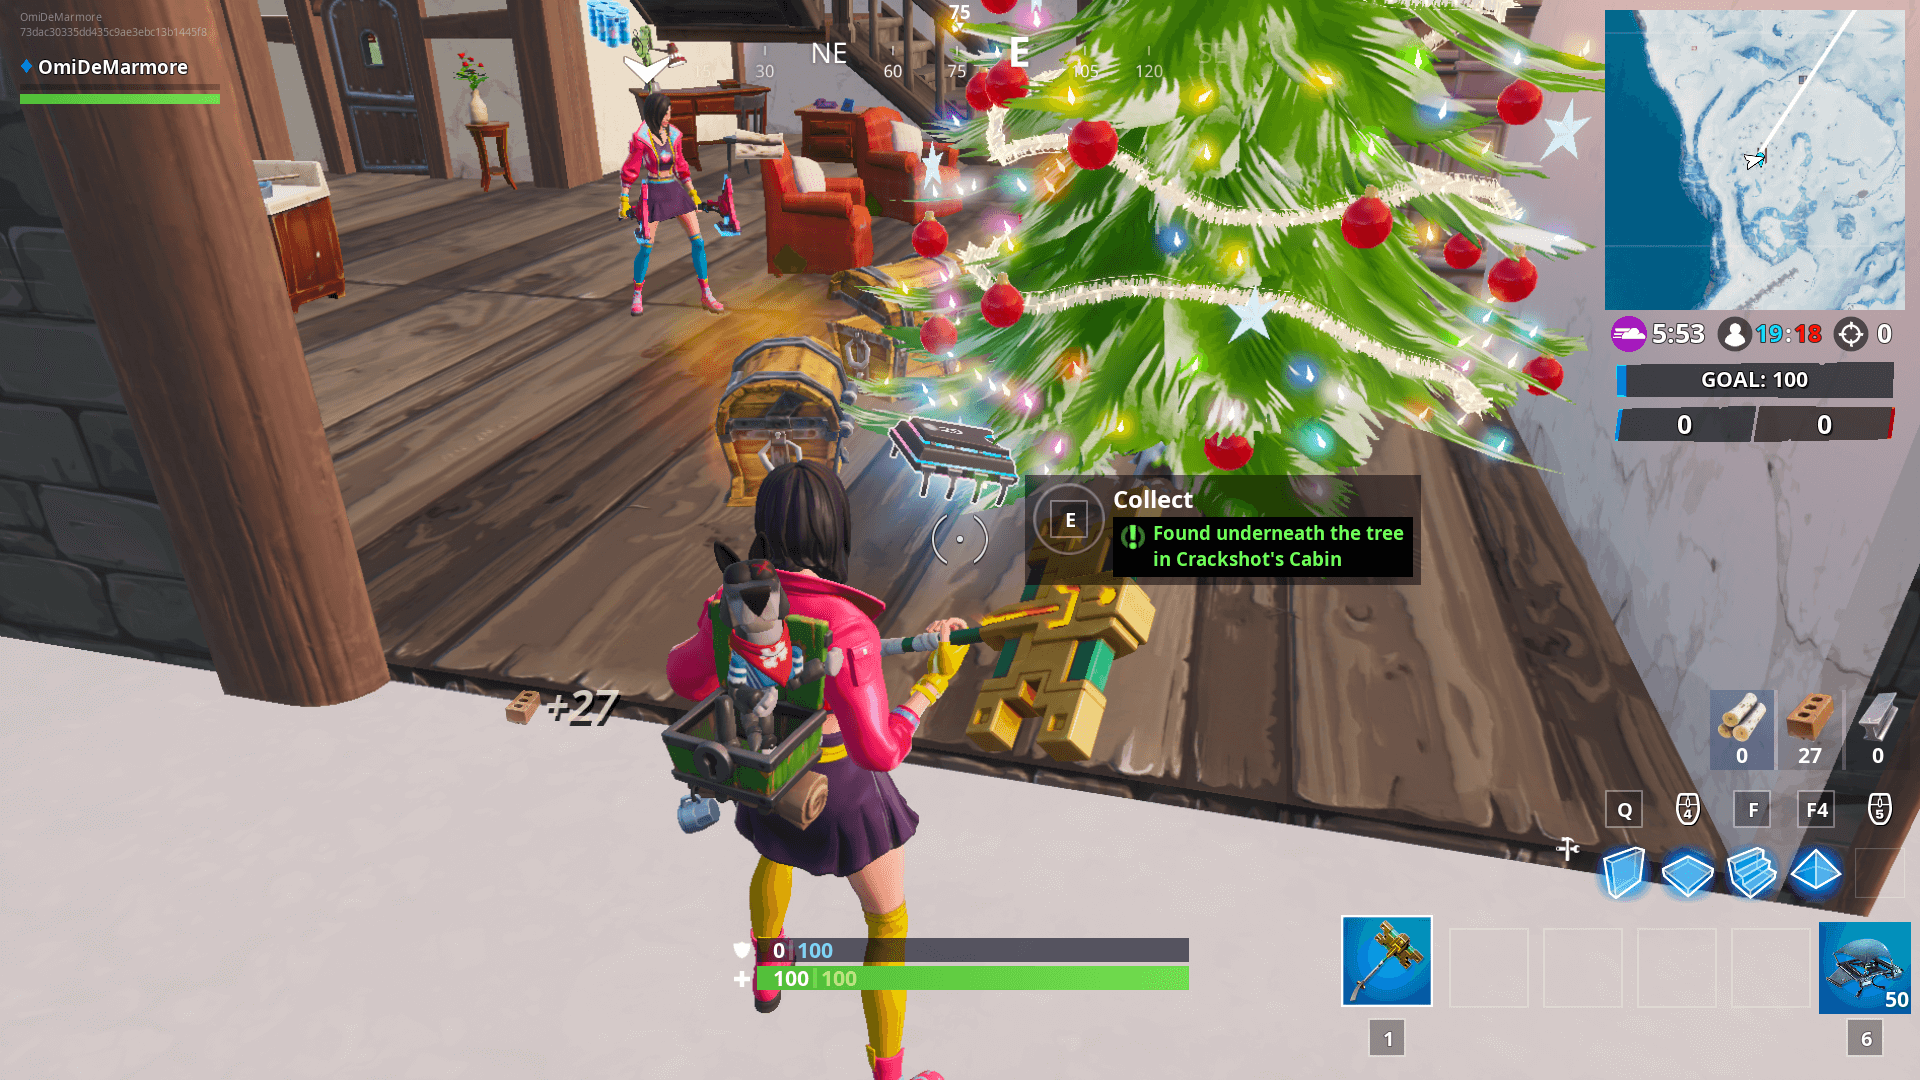 'Fortnite' Fortbyte #29 Location - Found Underneath The Tree In Crackshot's Cabin